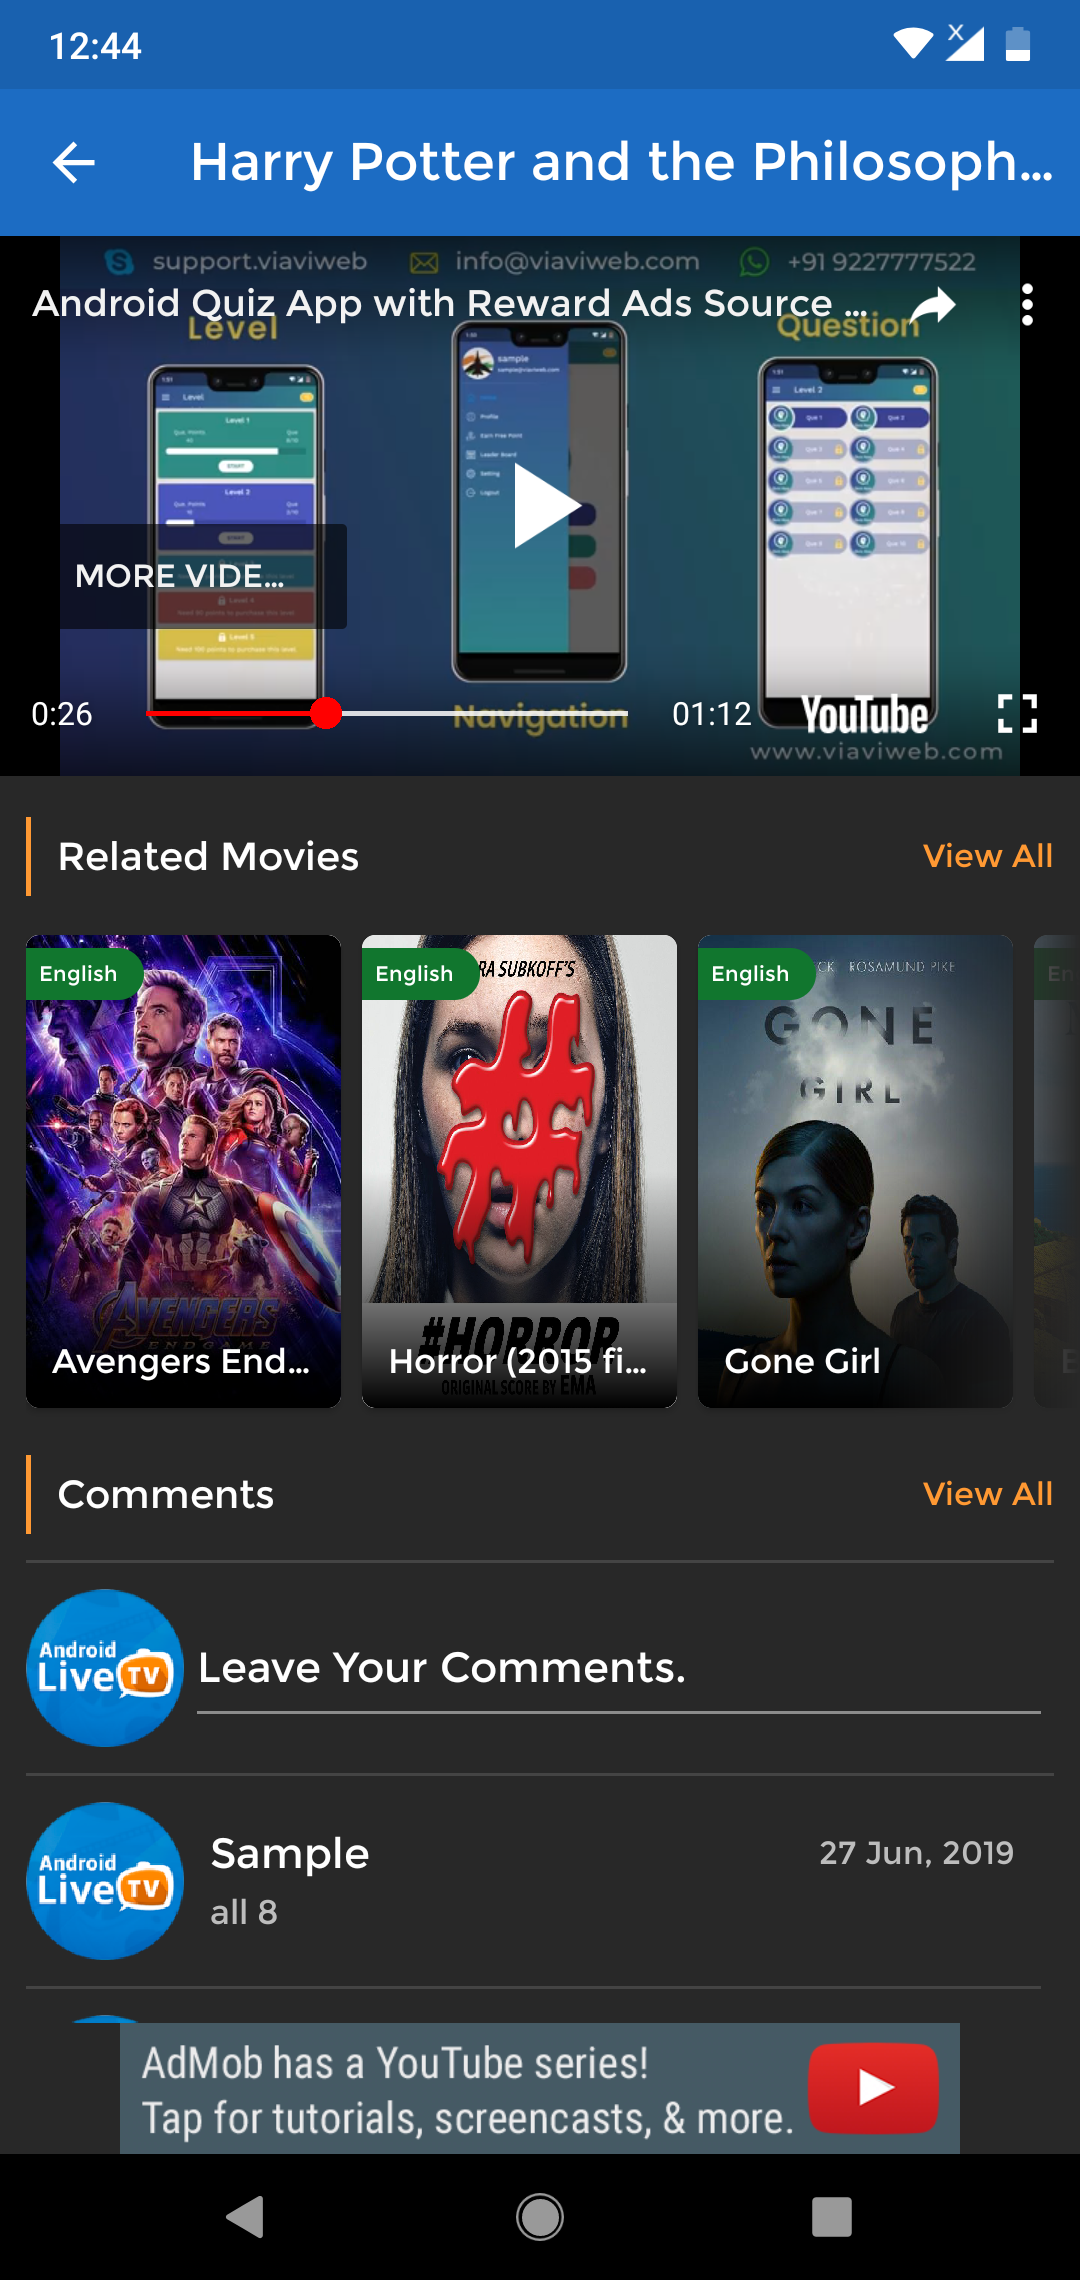 Android Live TV ( TV Streaming, Movies, Web Series, TV Shows & Originals)